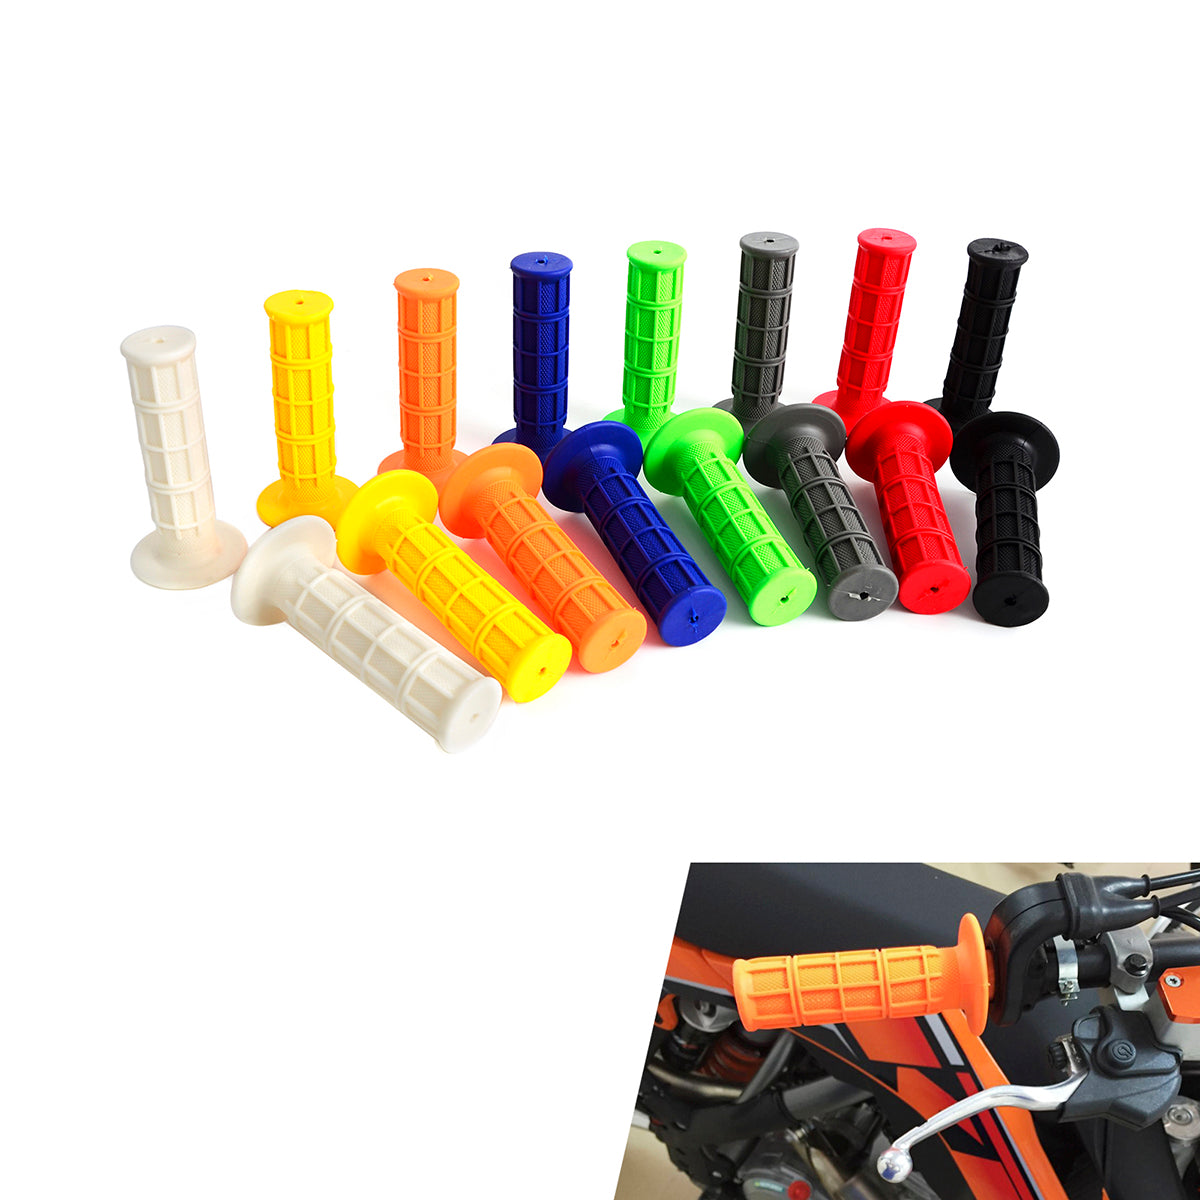 Universal Soft Rubber Hand Grips for Motorcycle